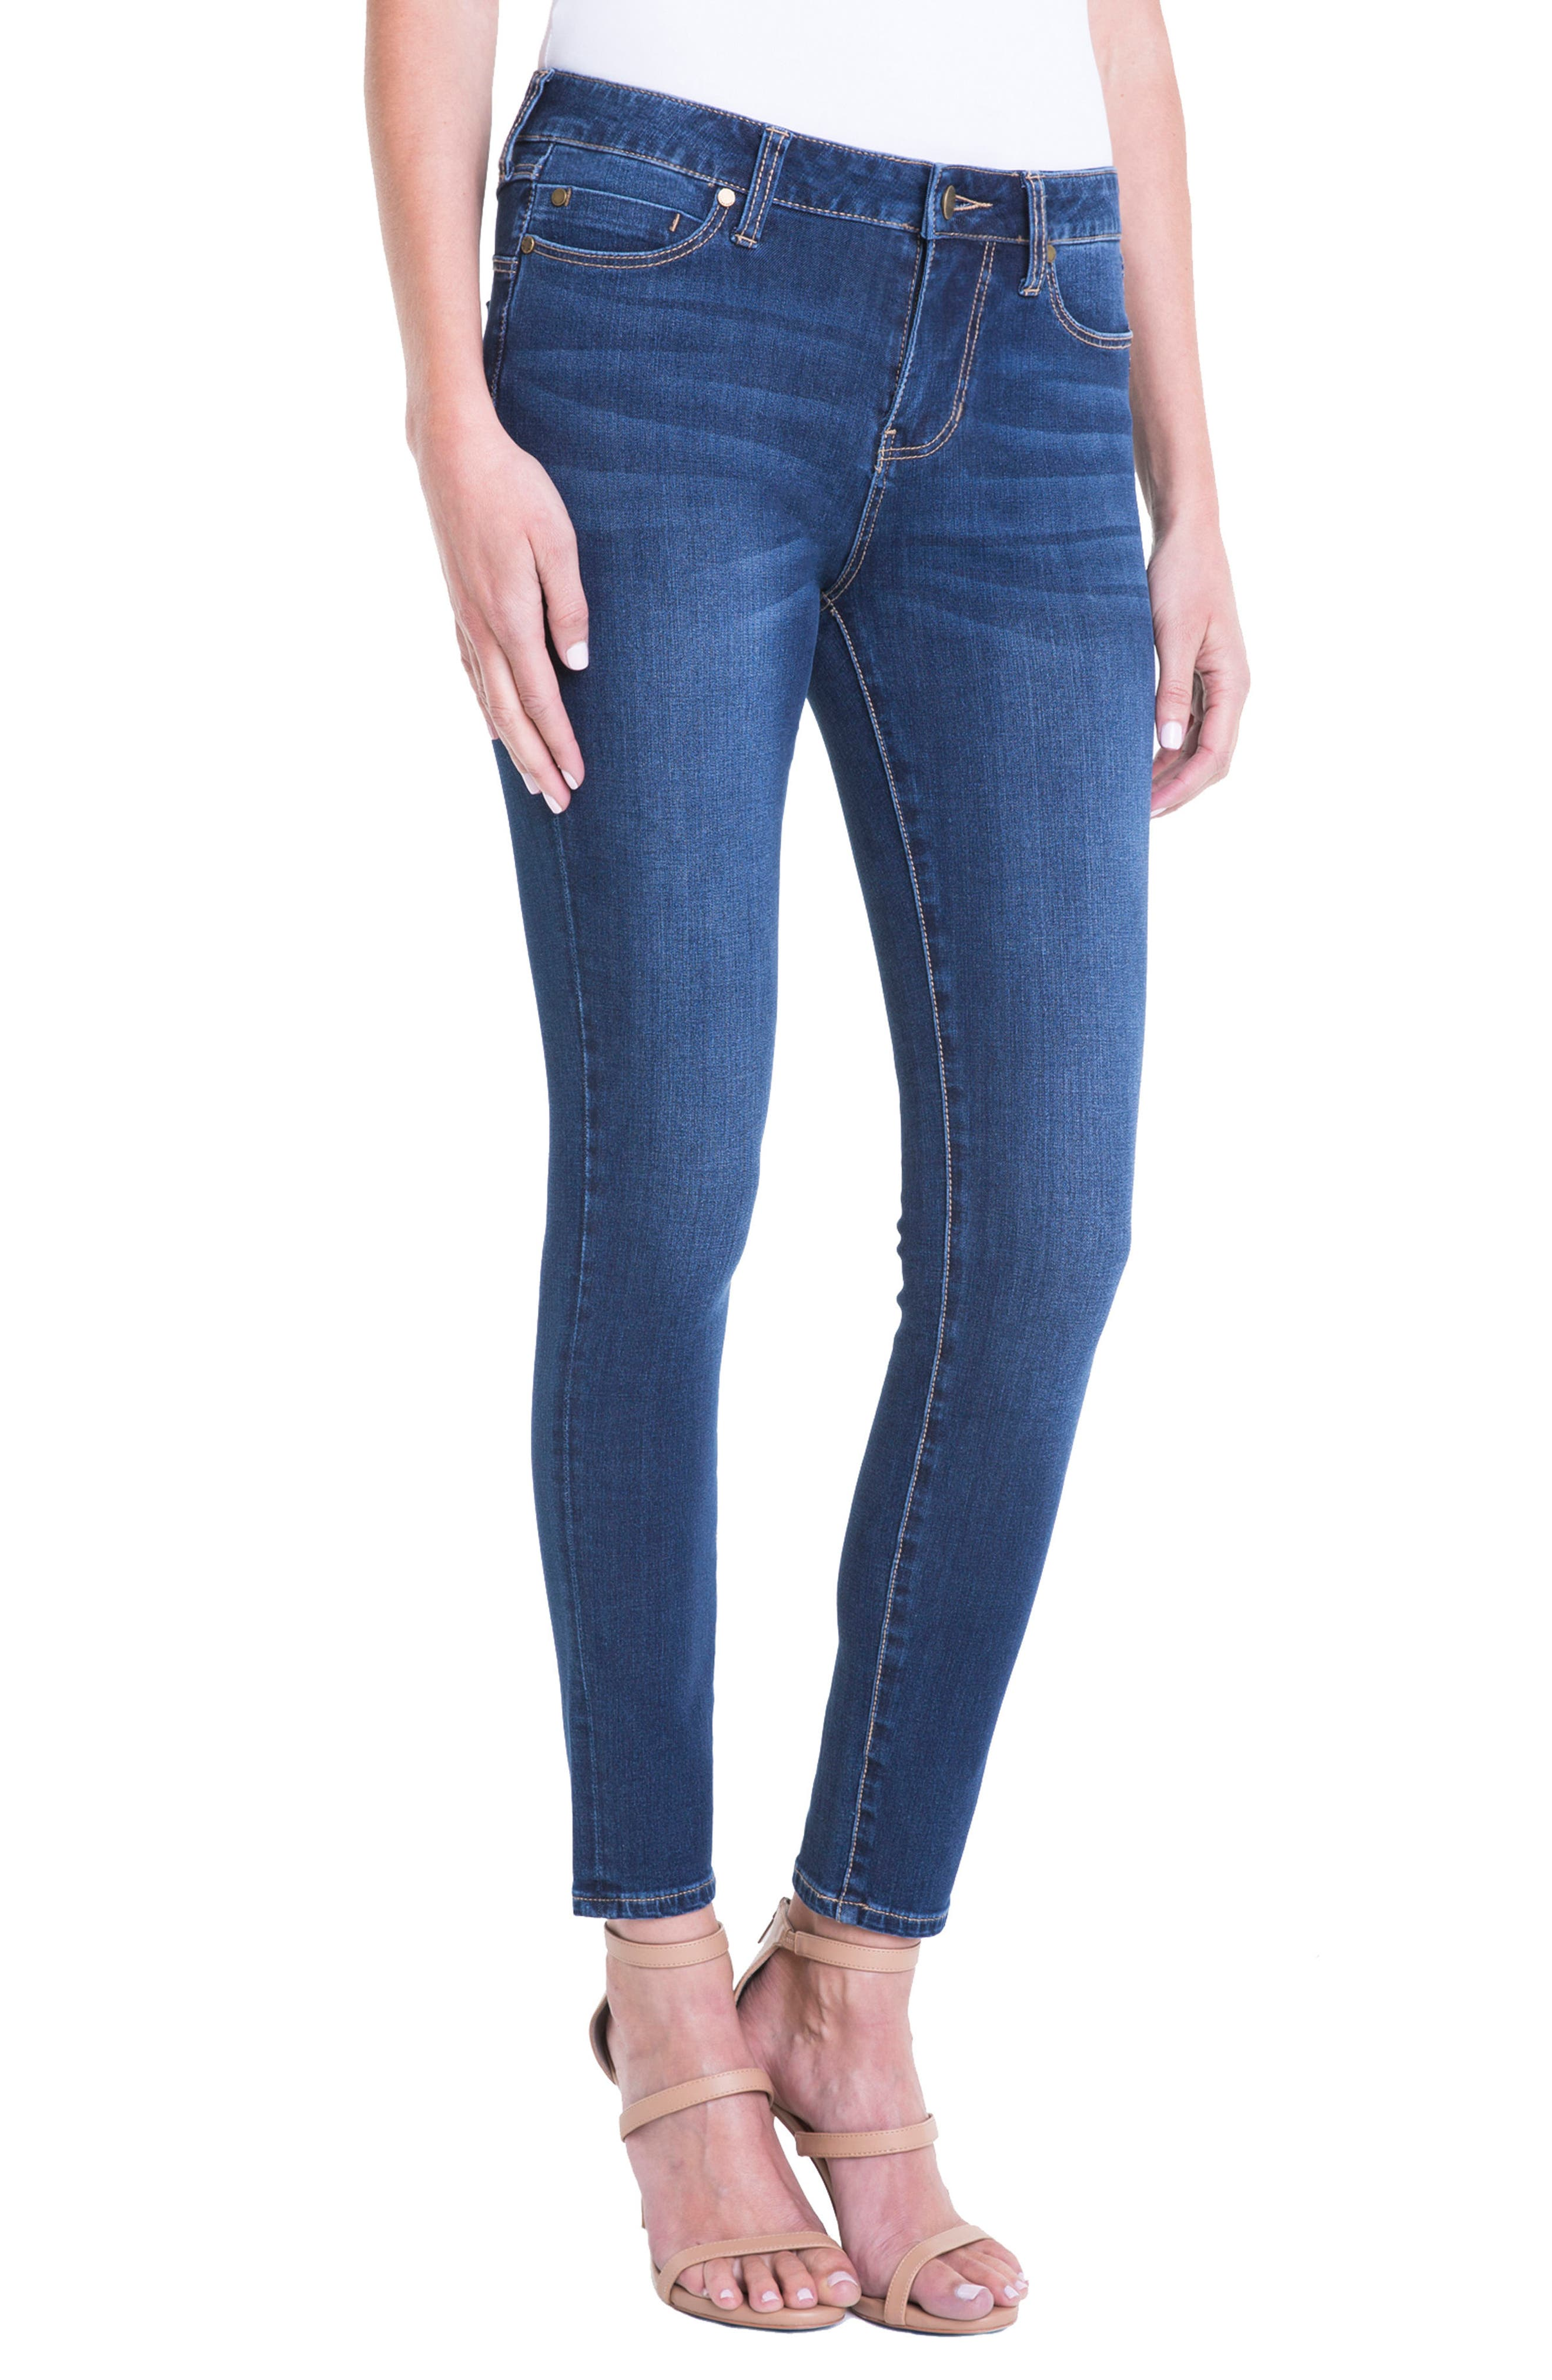 Jeans Company Piper Hugger Lift Sculpt Ankle Skinny Jeans,                             Alternate thumbnail 5, color,                             Lynx Wash